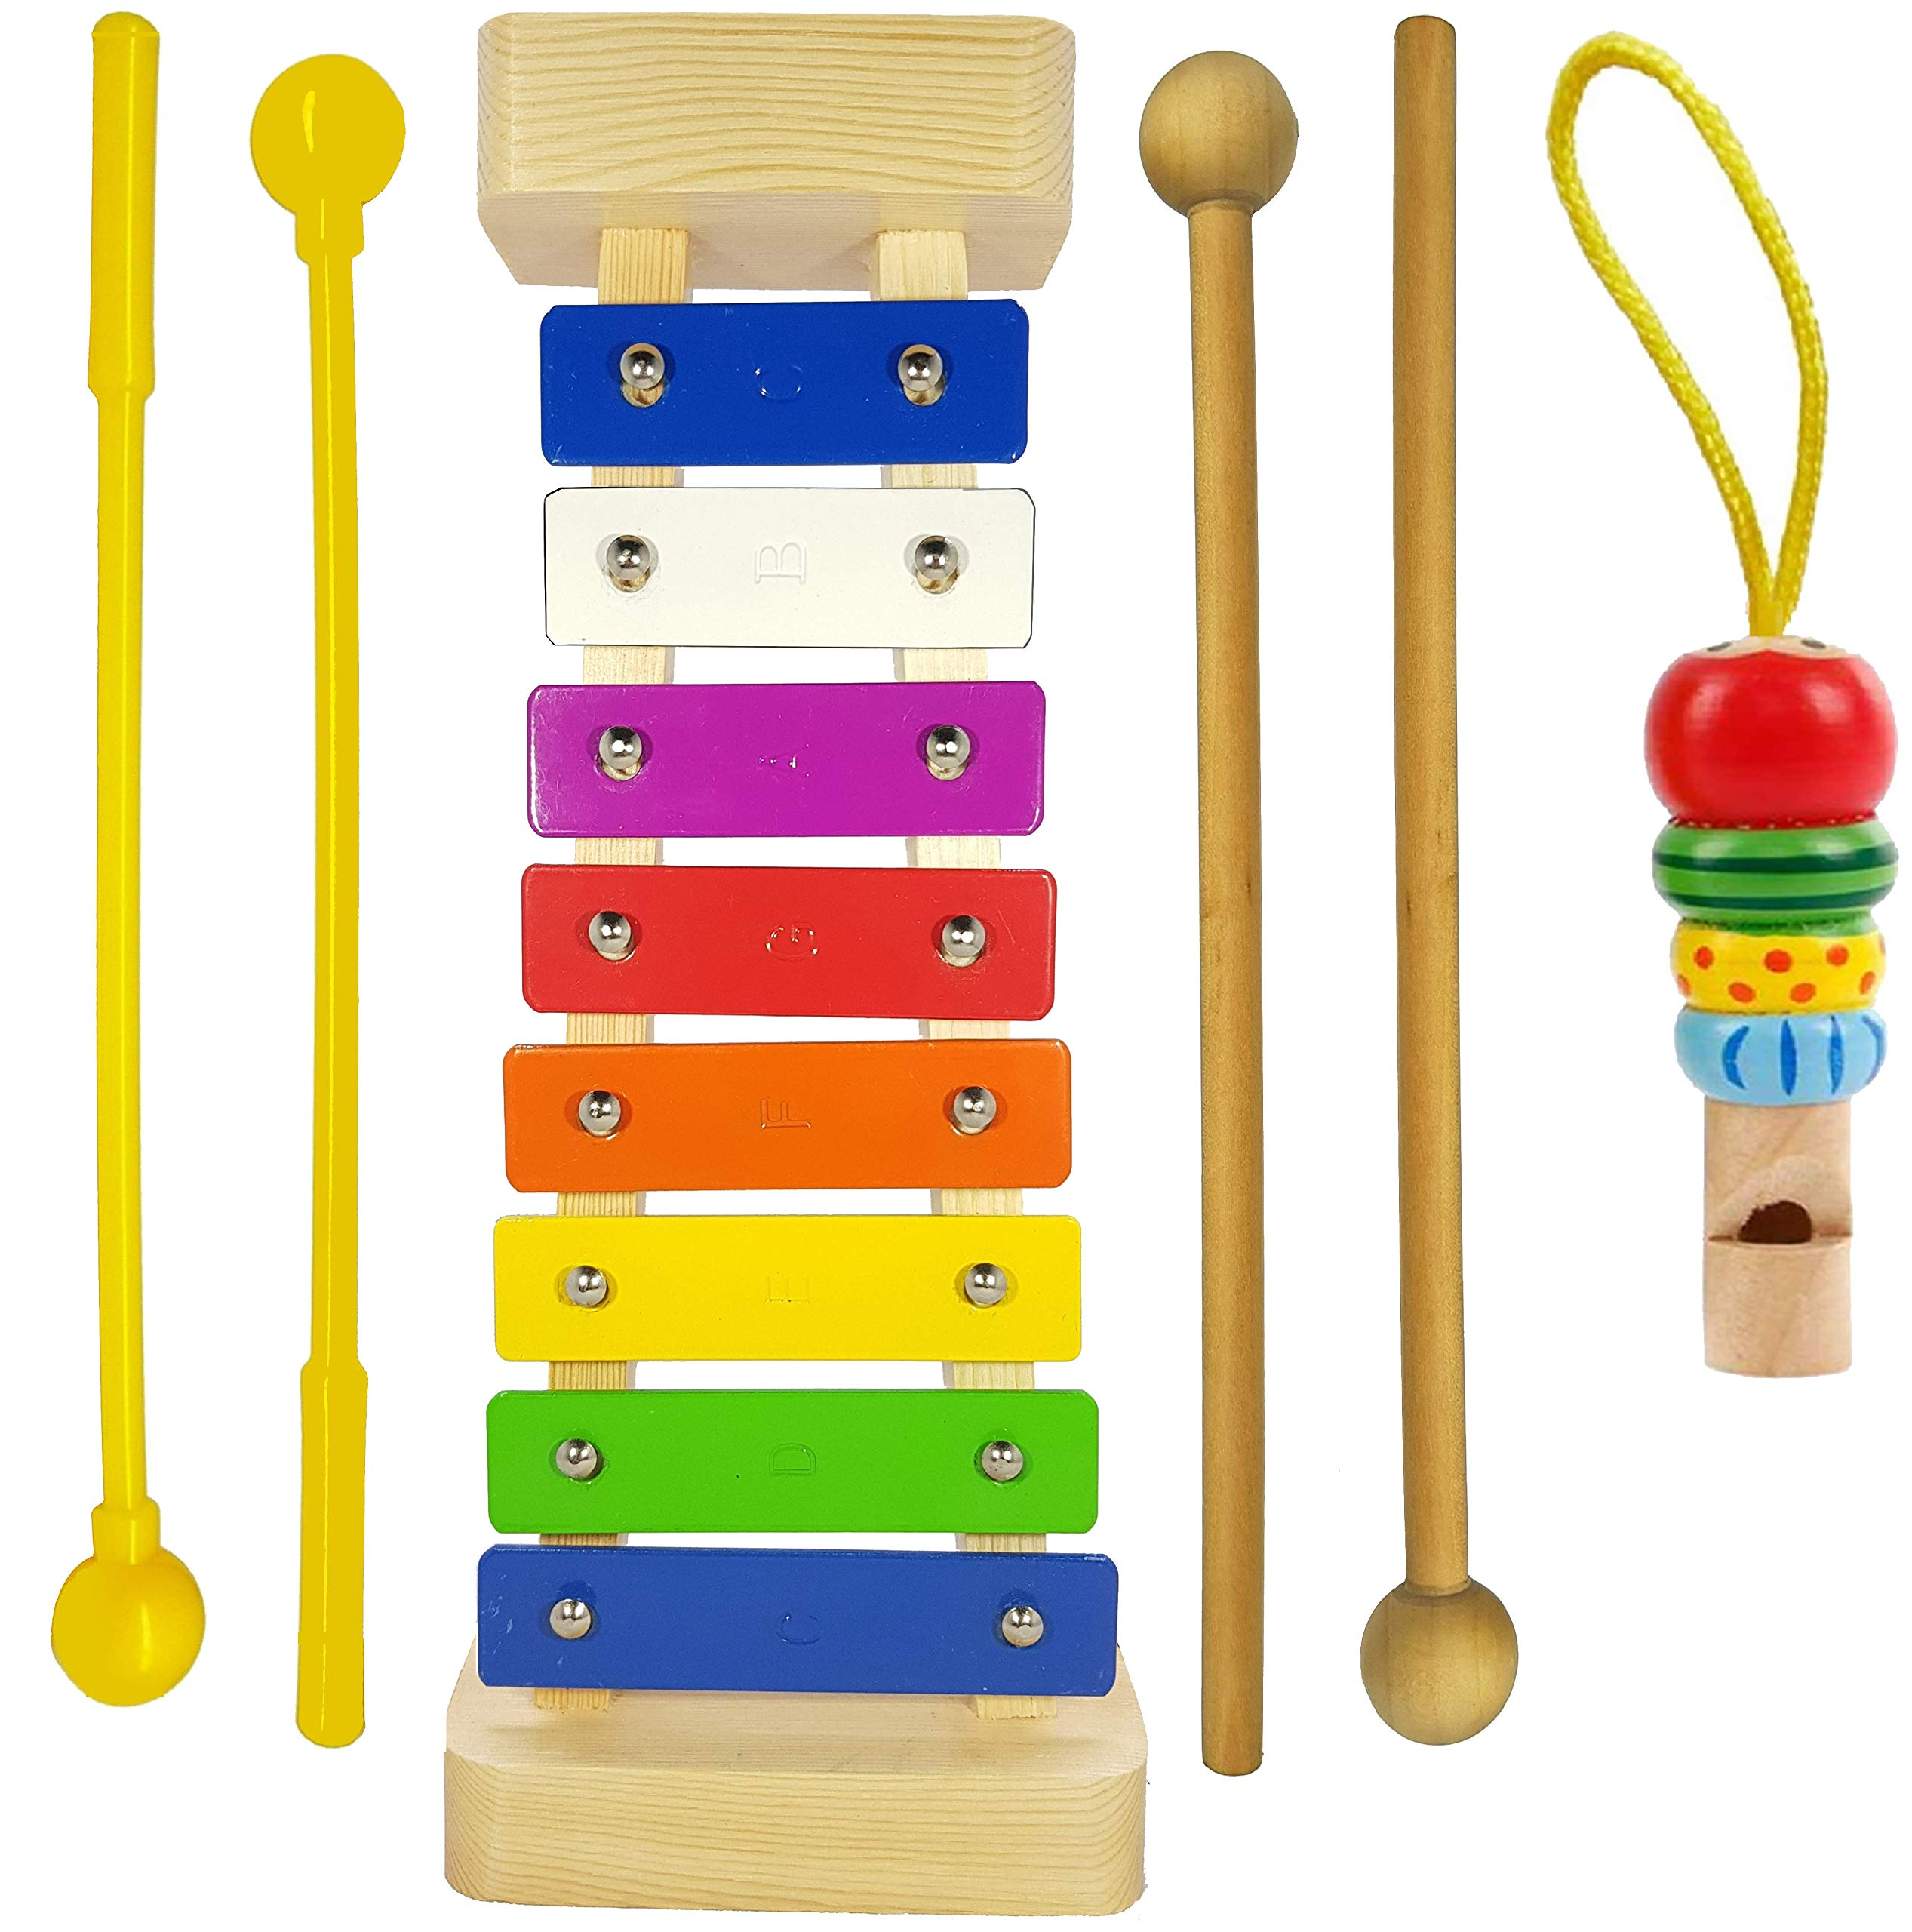 Xylophone for Kids: Glockenspiel Toy Best Birthday/Holiday Gift Idea - With(Four) Child-Safe Mallets 2 Wood 2 Plastic, 3 Music Card & Whistle Included